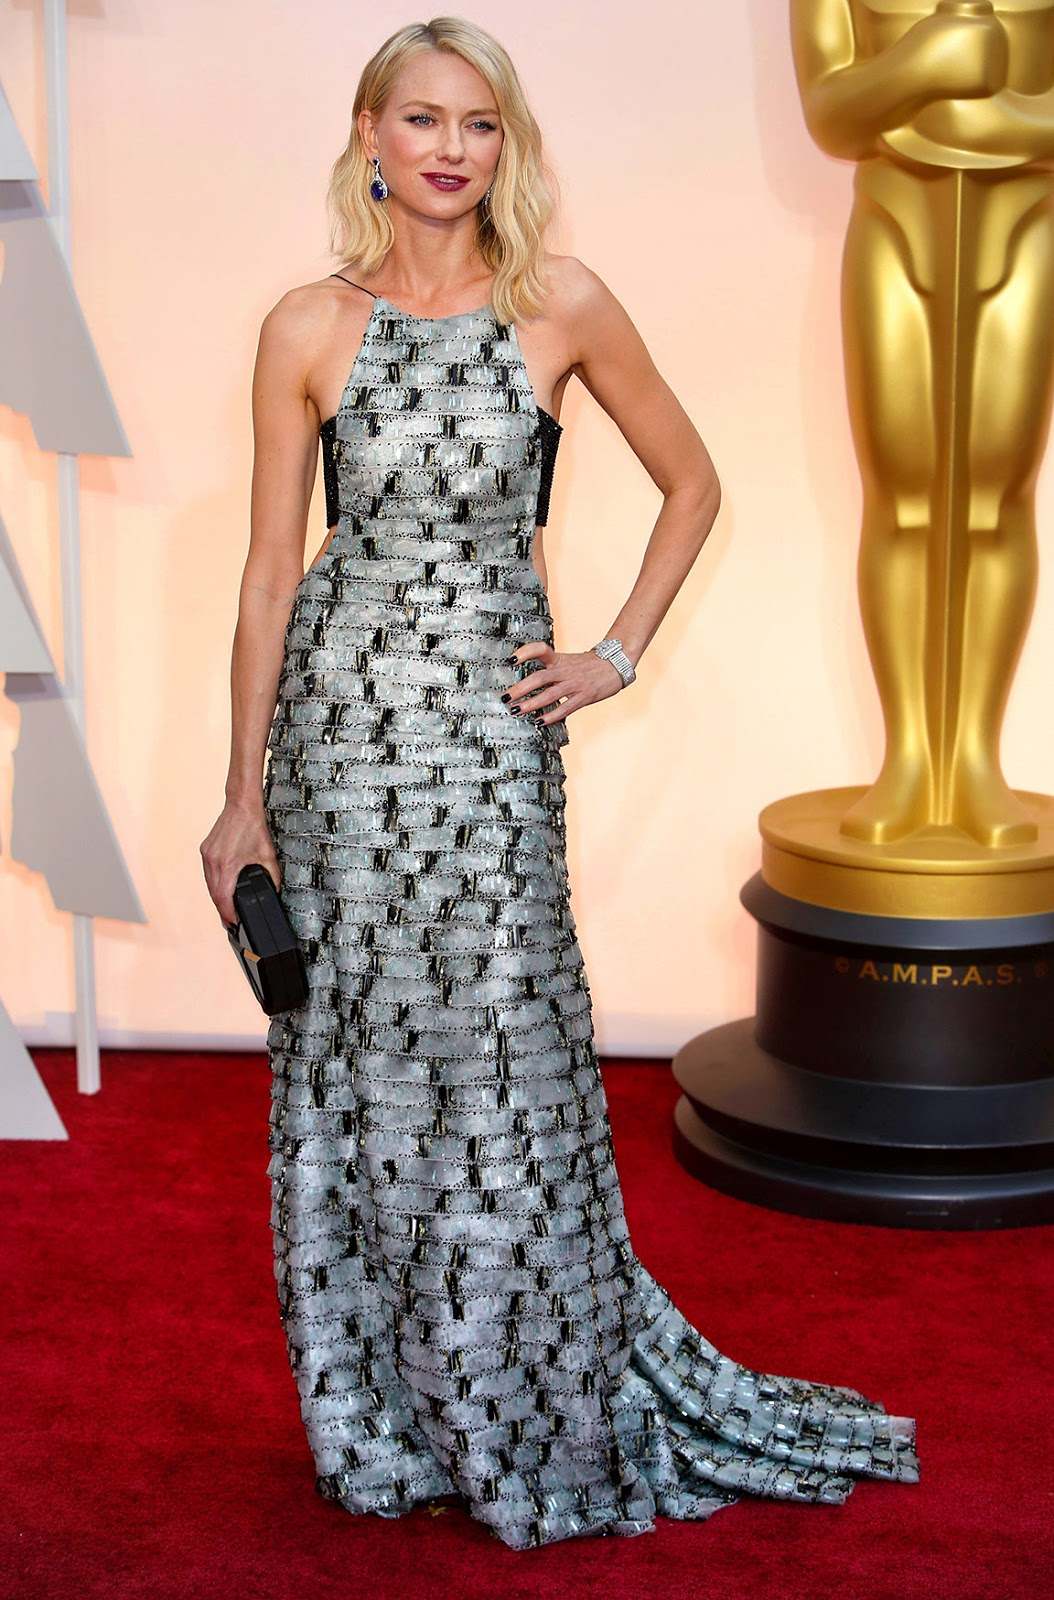 Naomi Watts in Armani at the Oscars 2015